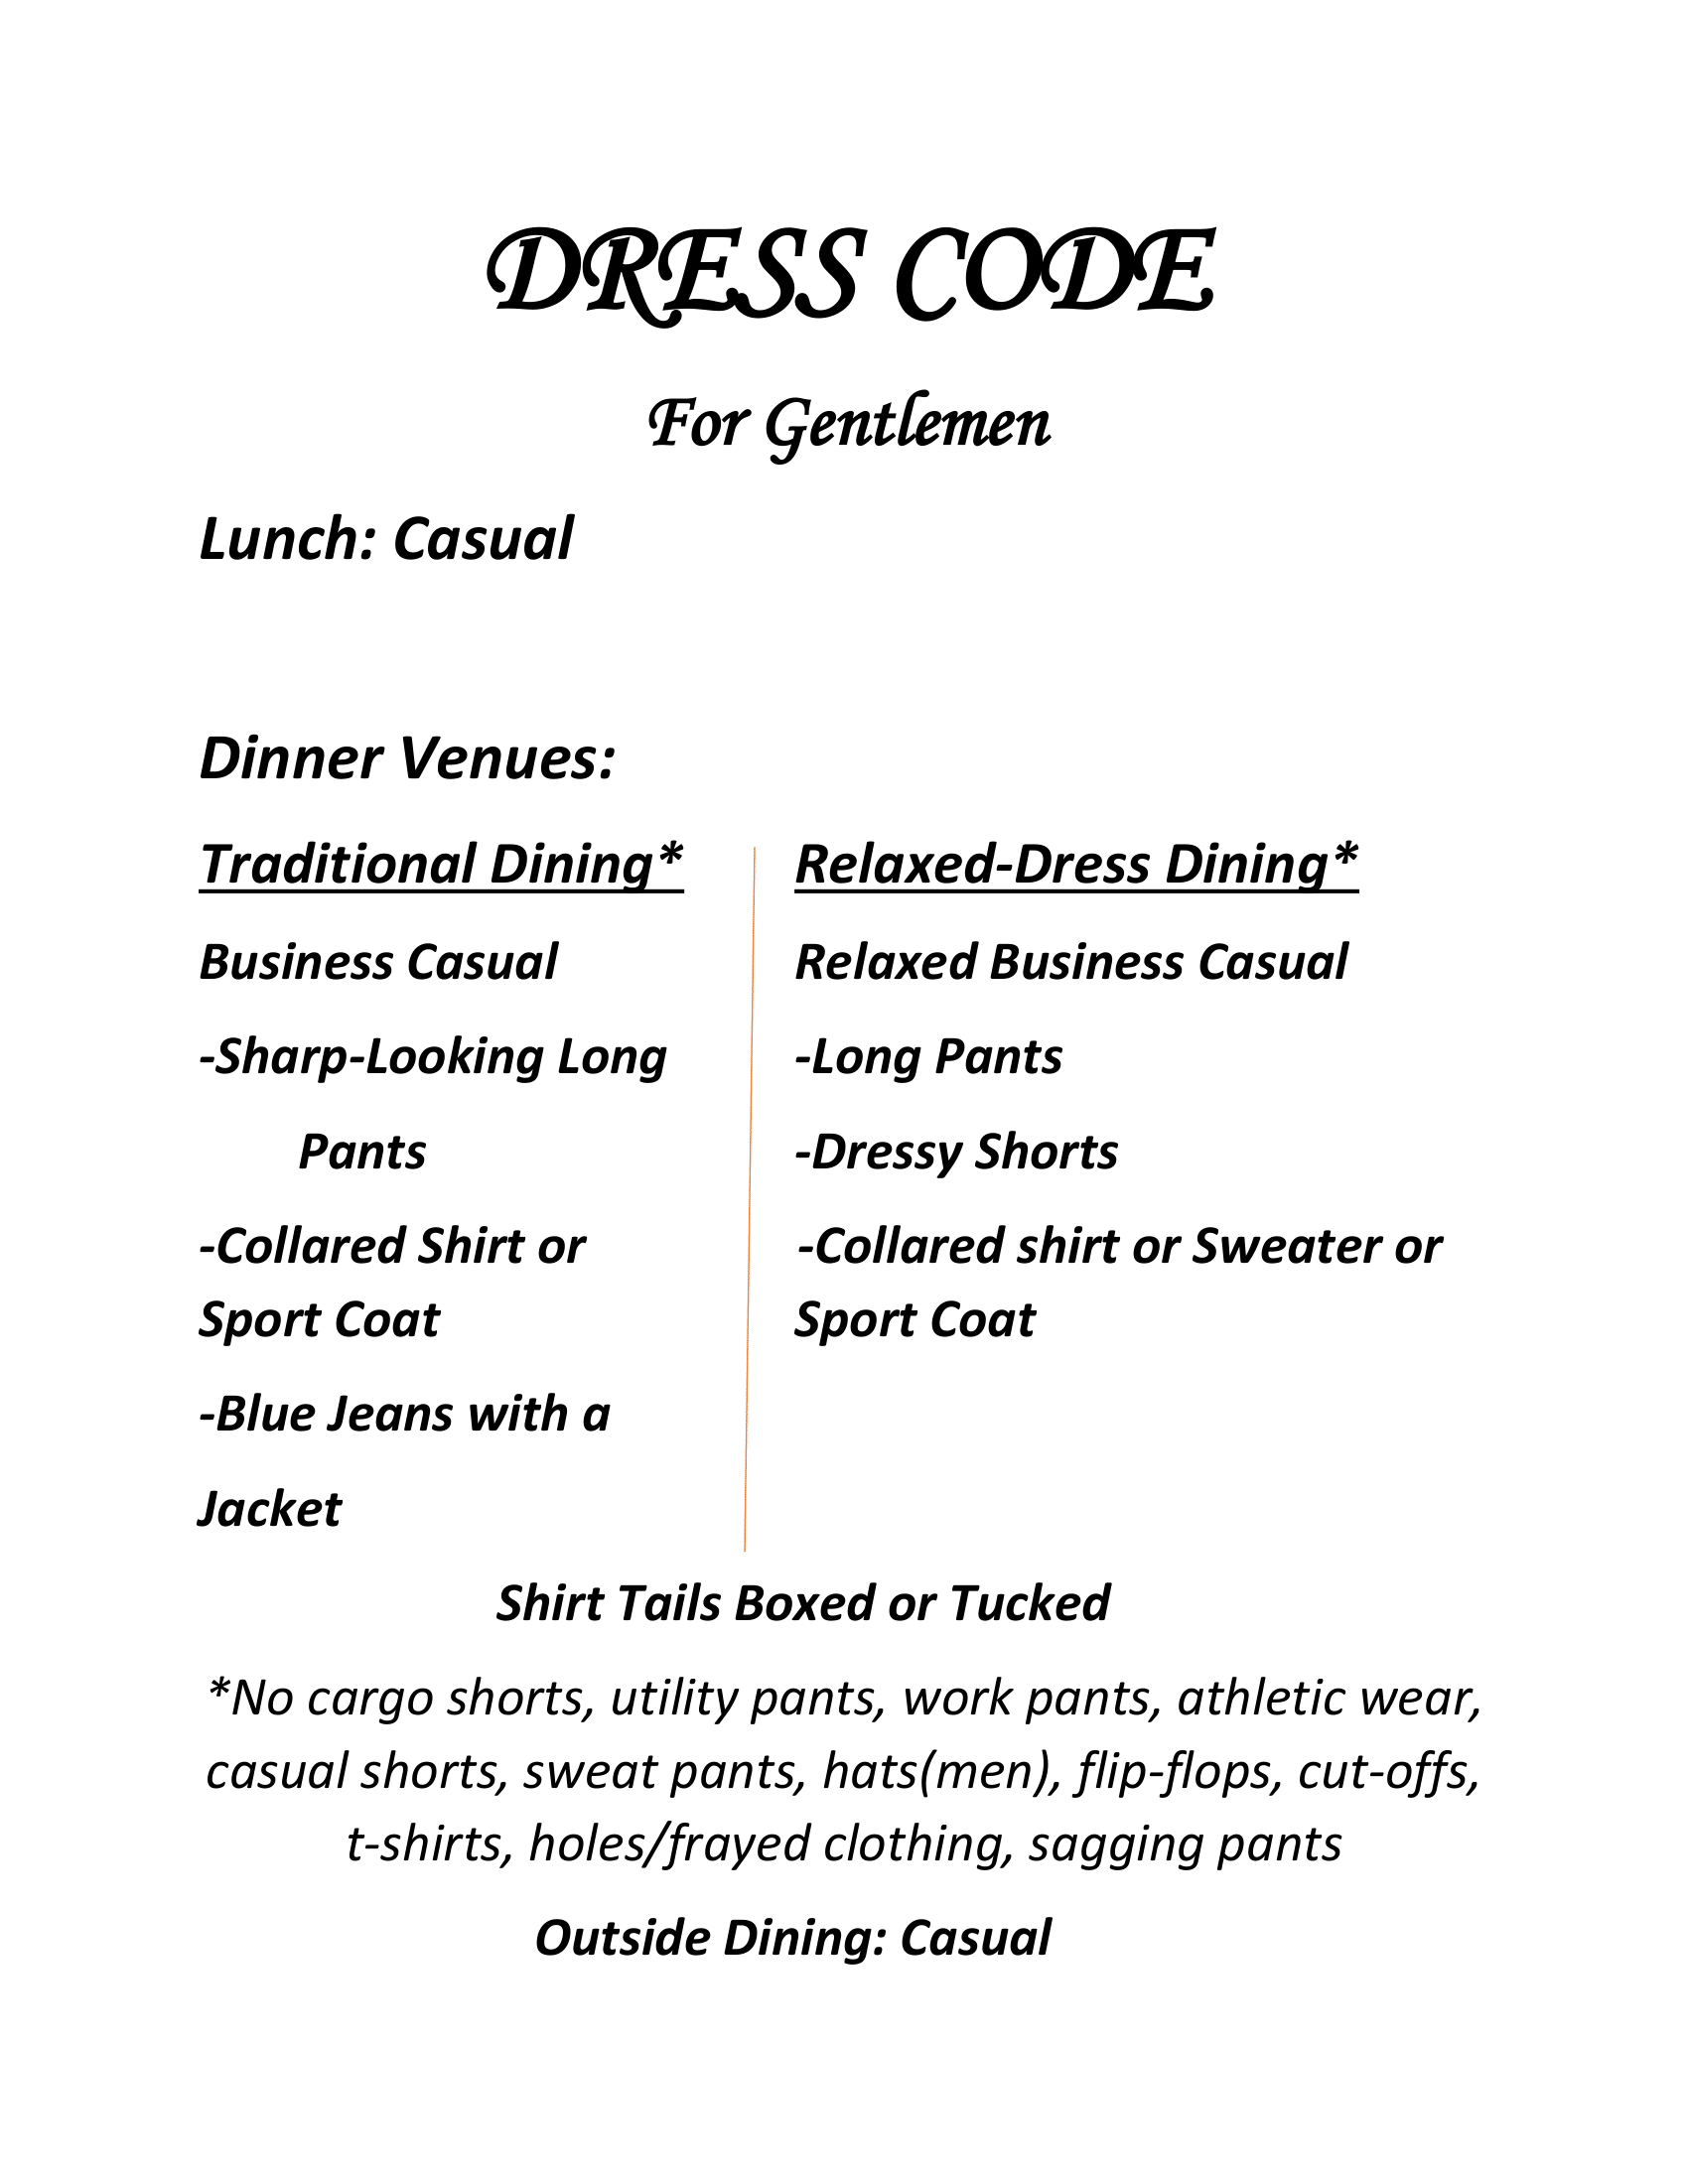 Dress Code. Readable PDF available via button.